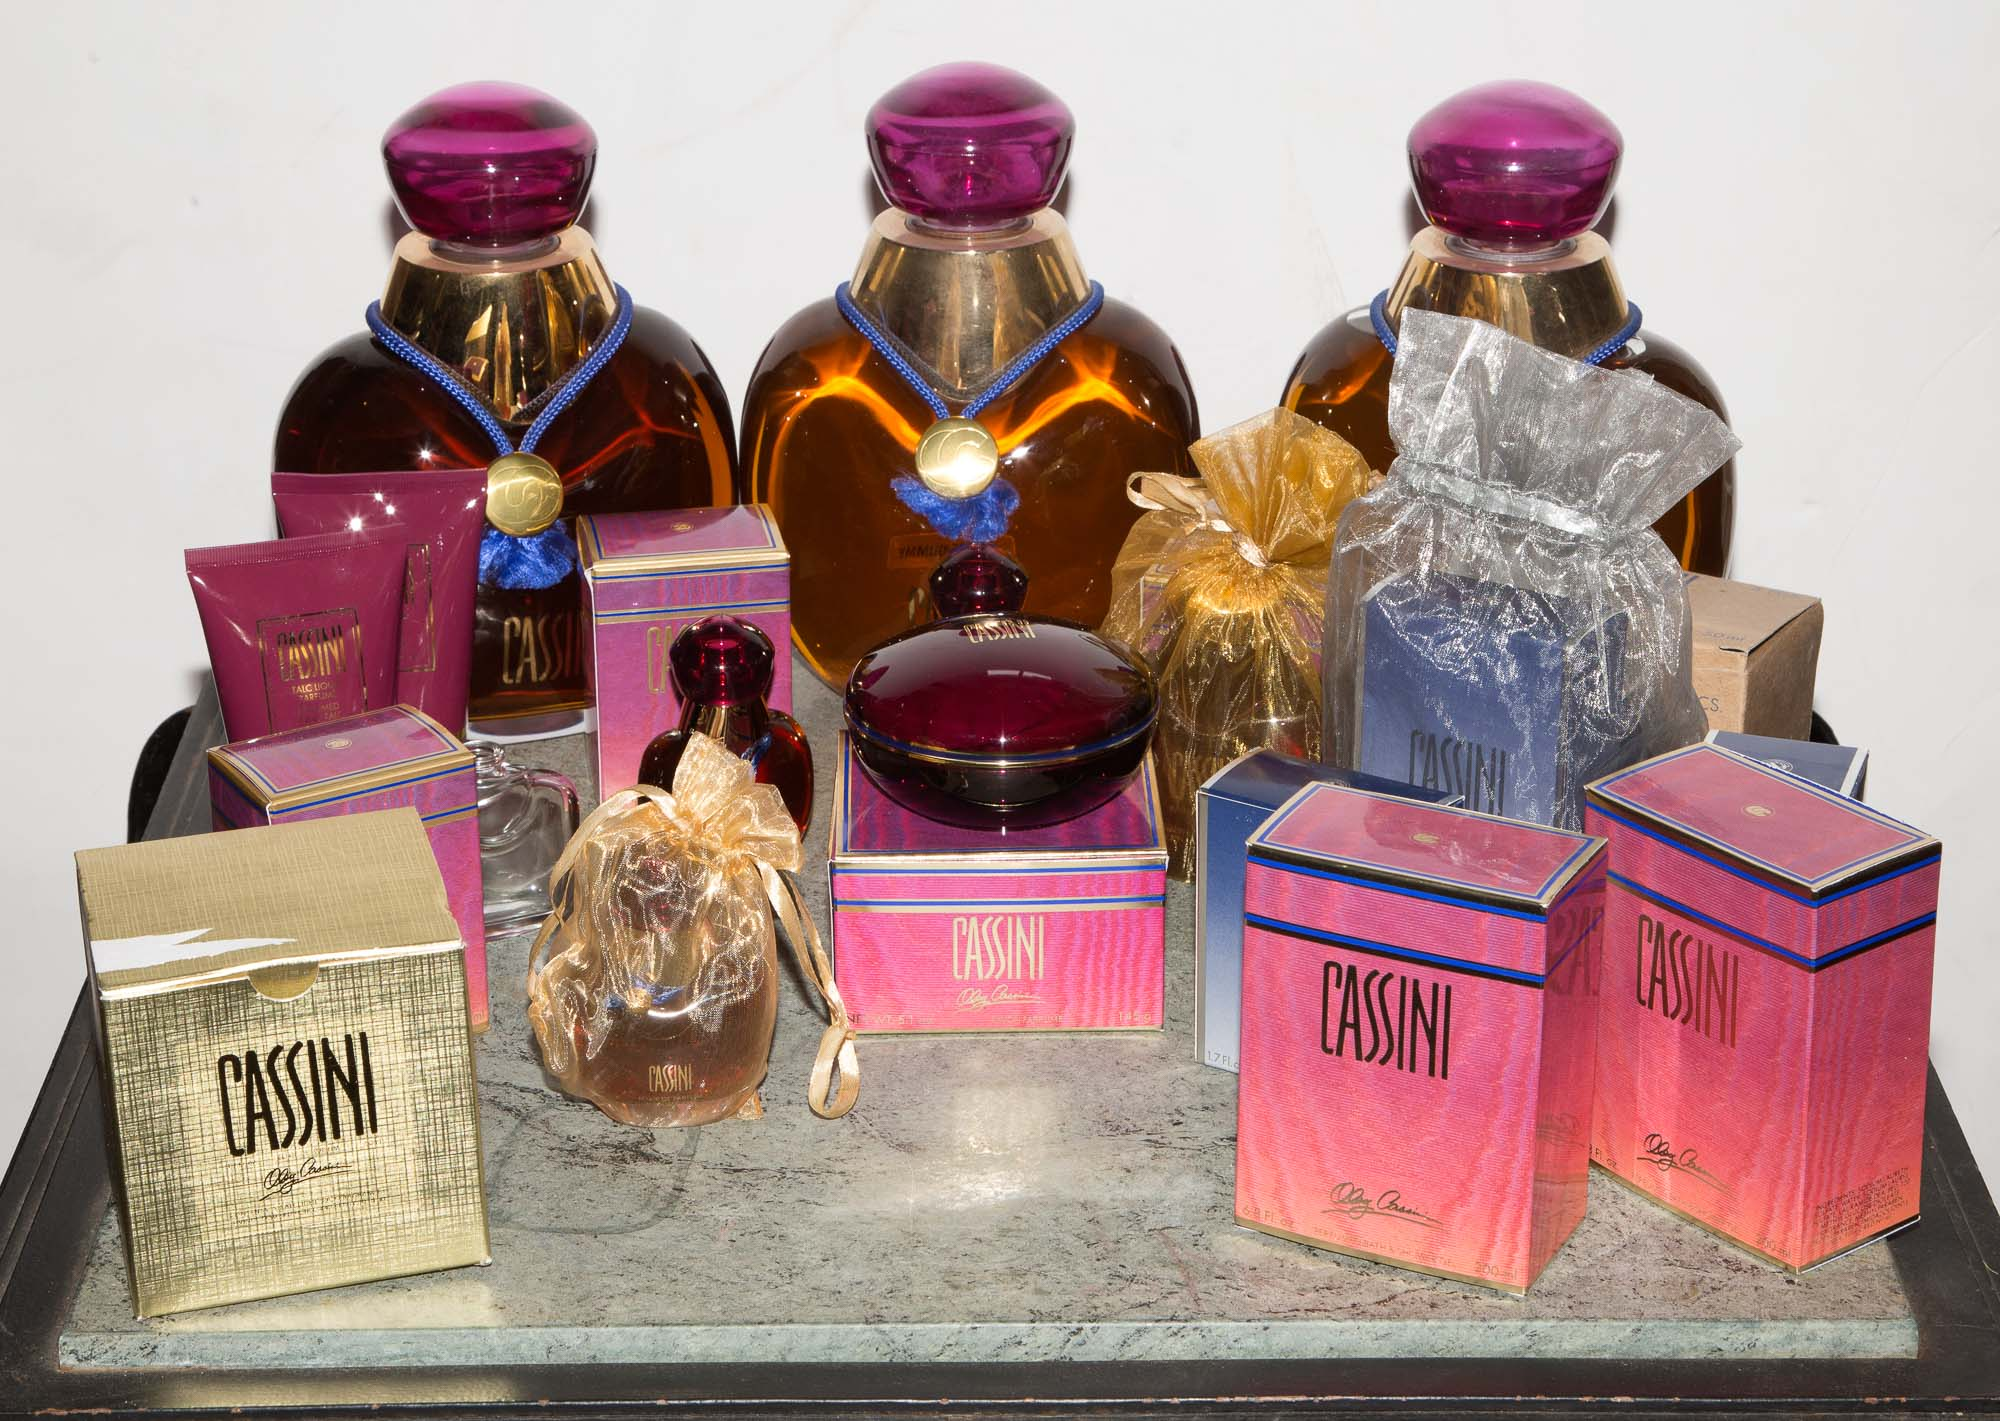 Lot image - OLEG CASSINI - PERFUME, BATH PRODUCTS & GIFTS  A large lot of Cassini perfume, bath products and related items.